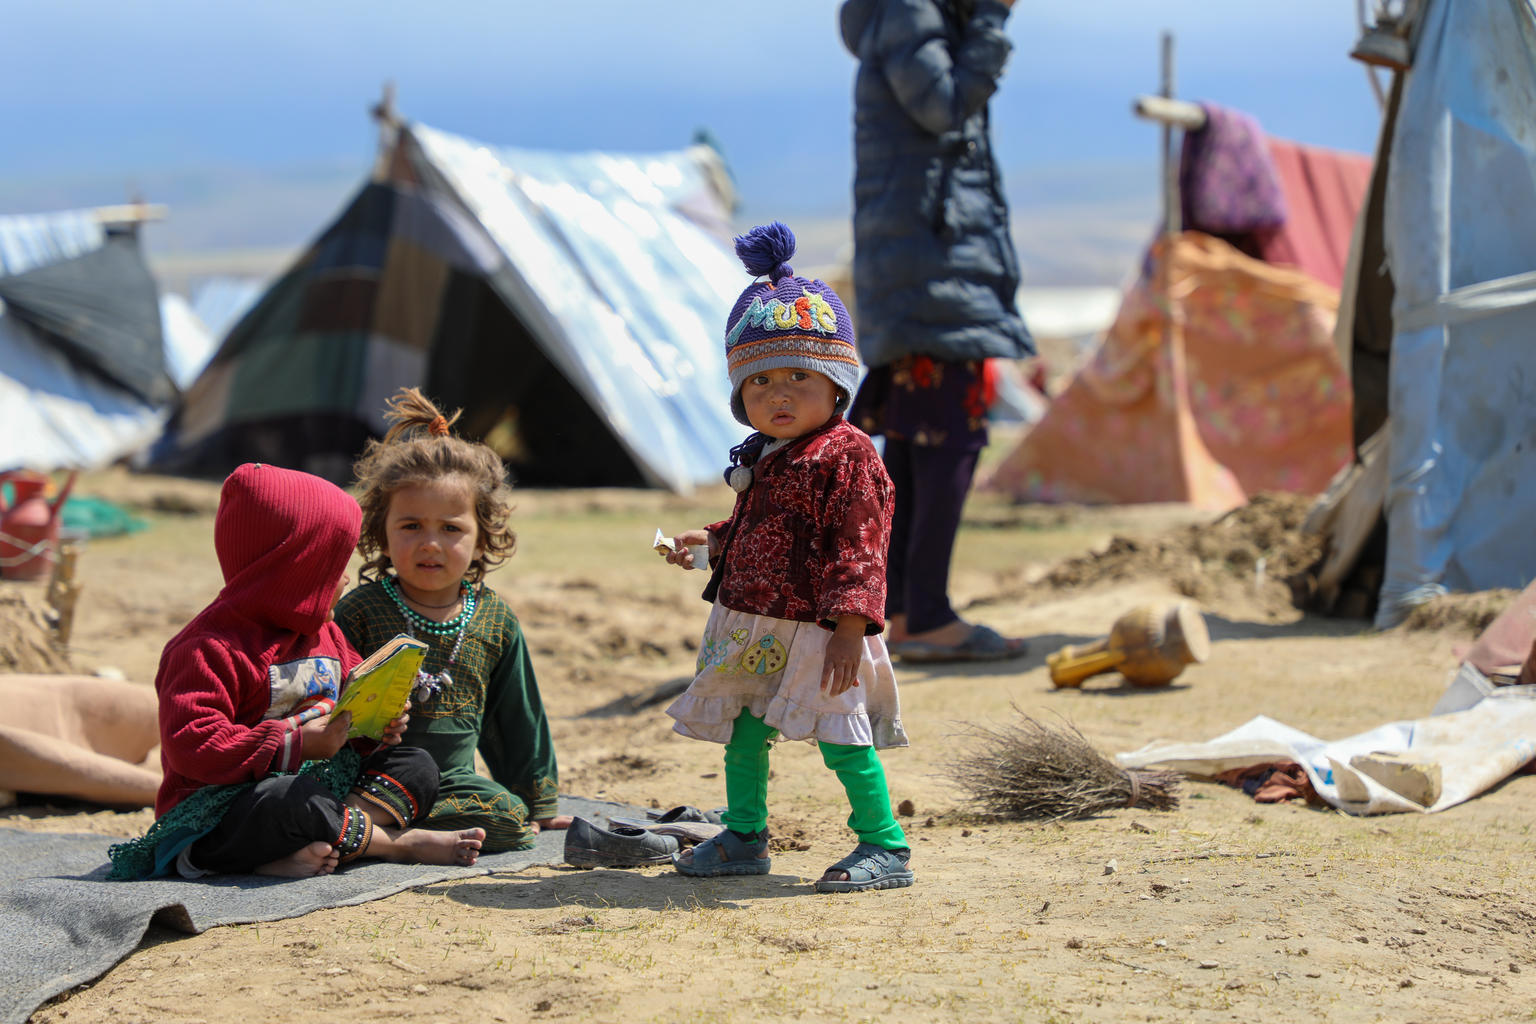 3 kids (2-3 years old) wearing winter cloth in a camp setting.